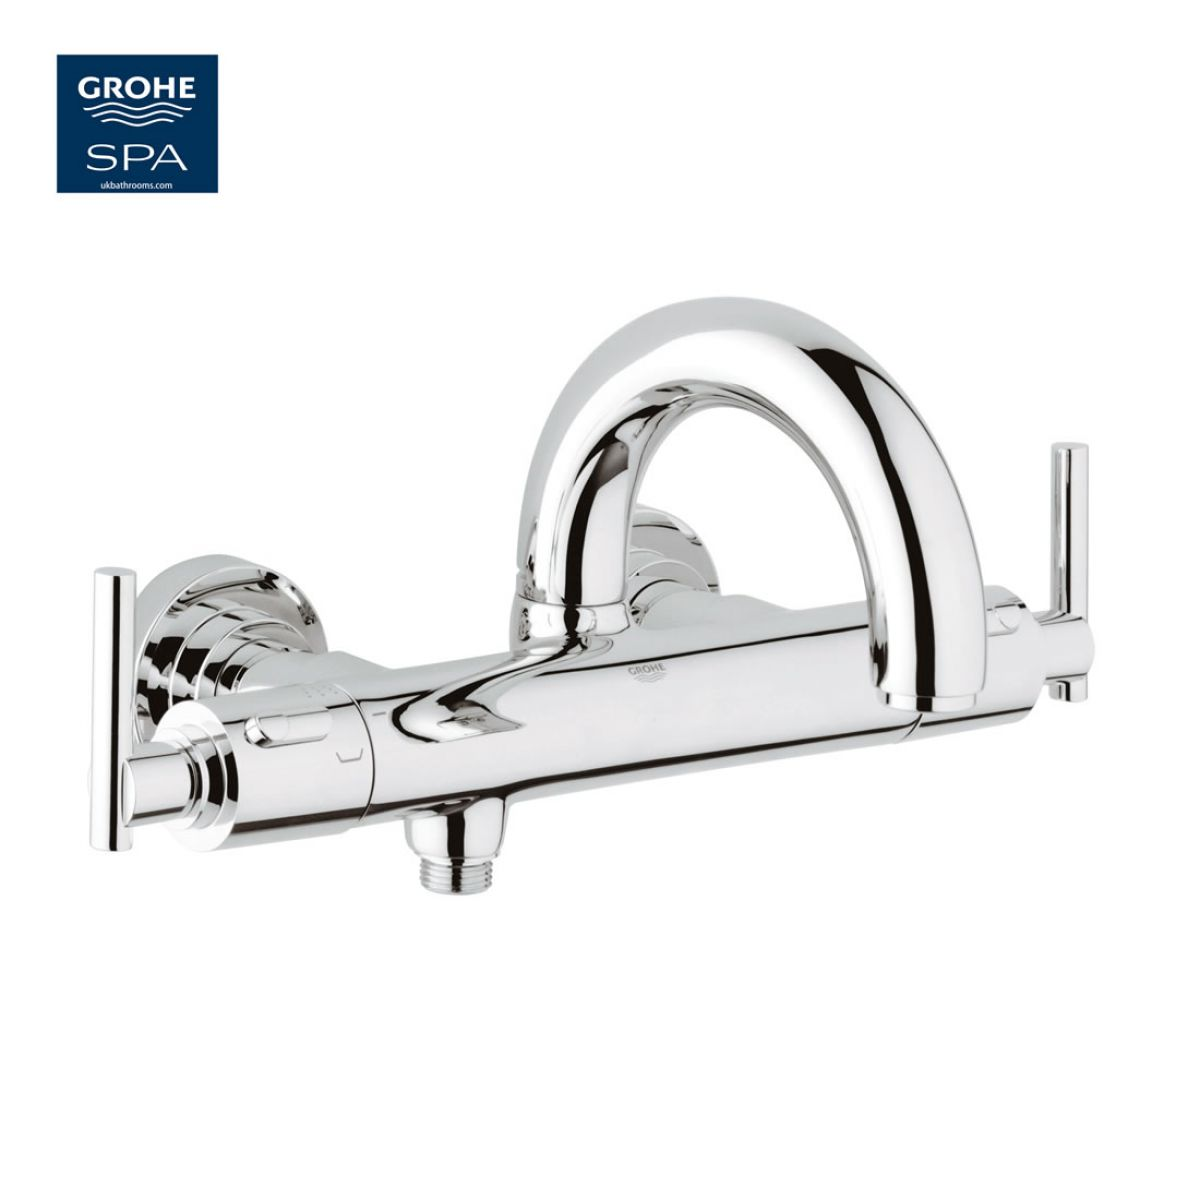 grohe atrio jota thermostatic bath shower mixer ukbathrooms grohe grohtherm 1000 thermostatic bath shower mixer 1 2